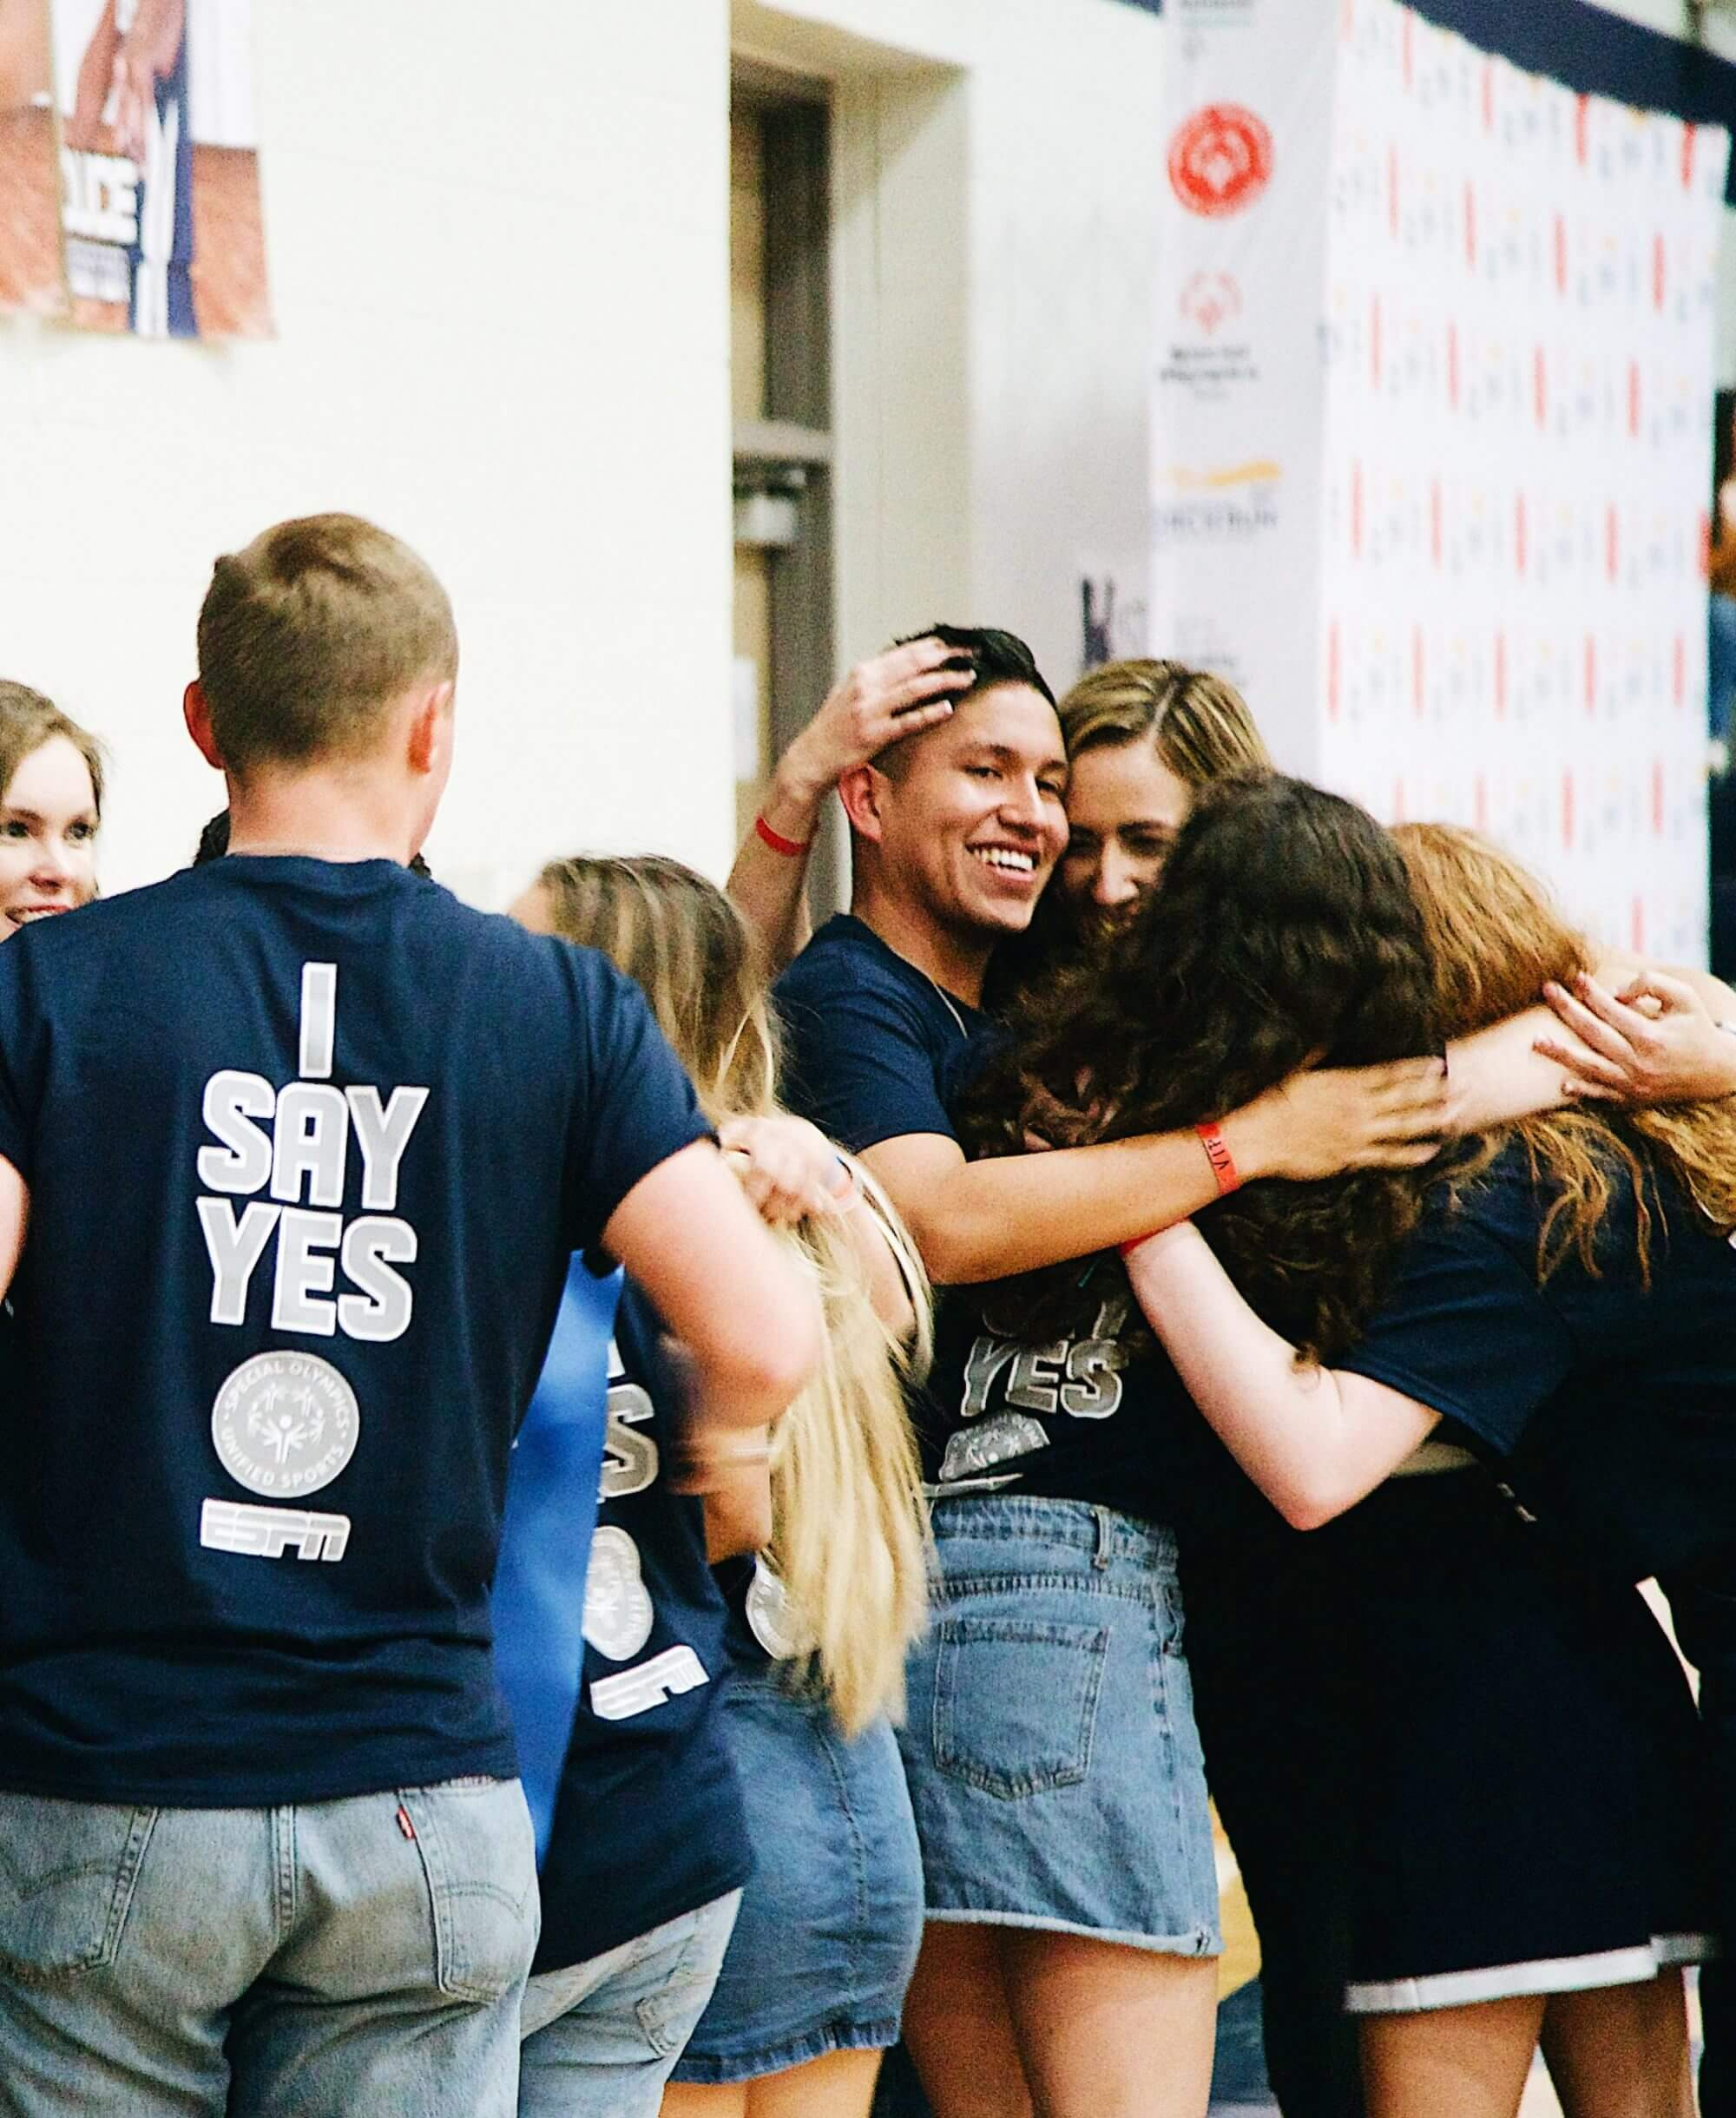 A group of Hendrickson High School students hugging.